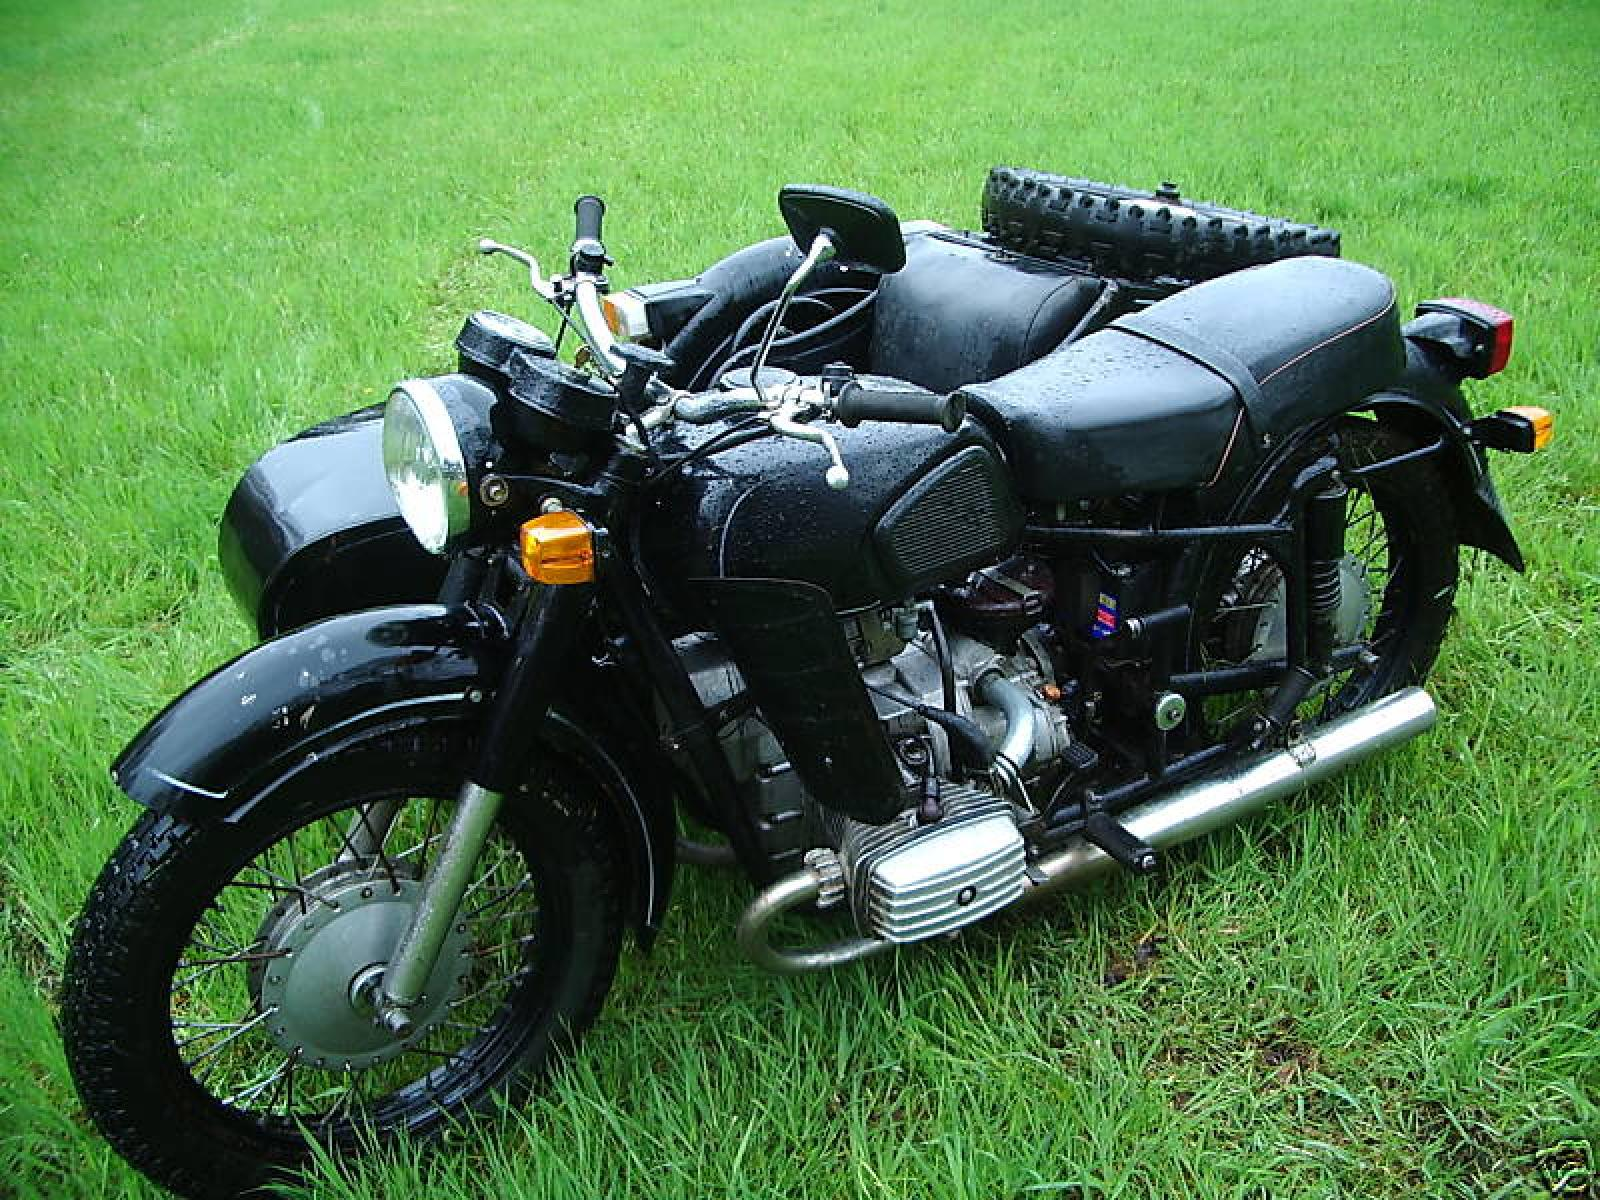 Dnepr MT 10 with sidecar 1981 images #70409